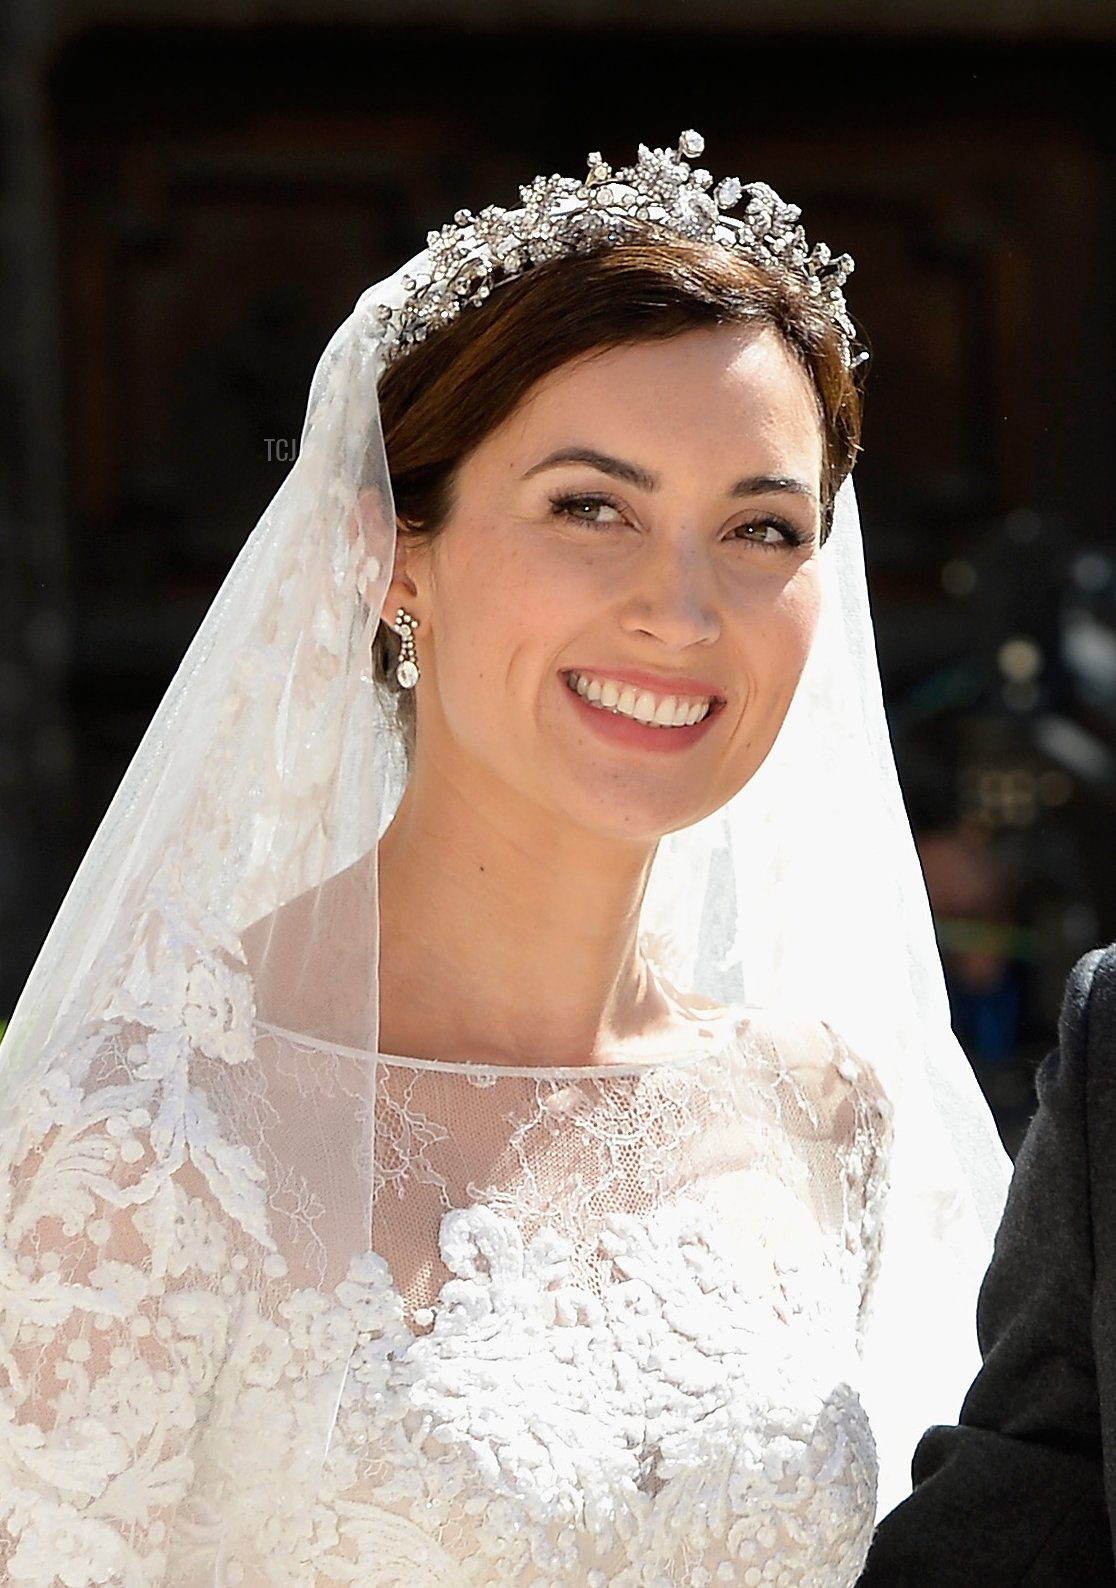 Princess Claire Of Luxembourg departs from her wedding ceremony at the Basilique Sainte Marie-Madeleine on September 21, 2013 in Saint-Maximin-La-Sainte-Baume, France